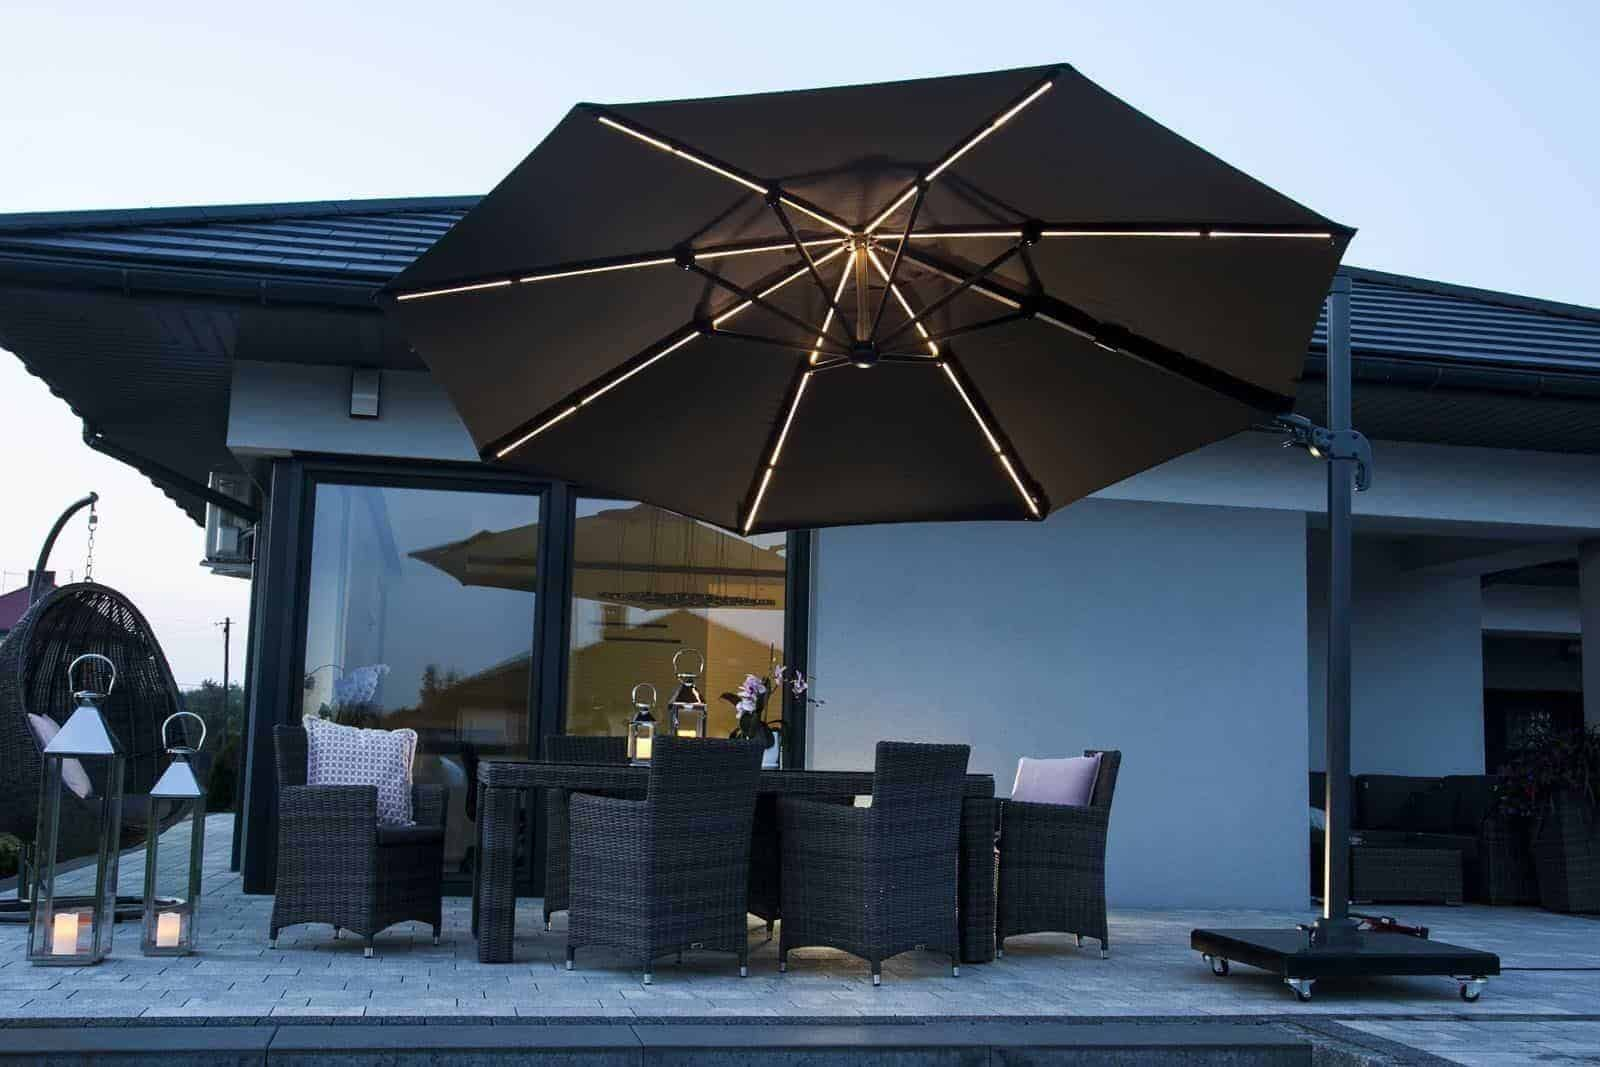 Parasol ogrodowy CHALLENGER T2 GLOW Ø 3,5 m anthracite 7126 566